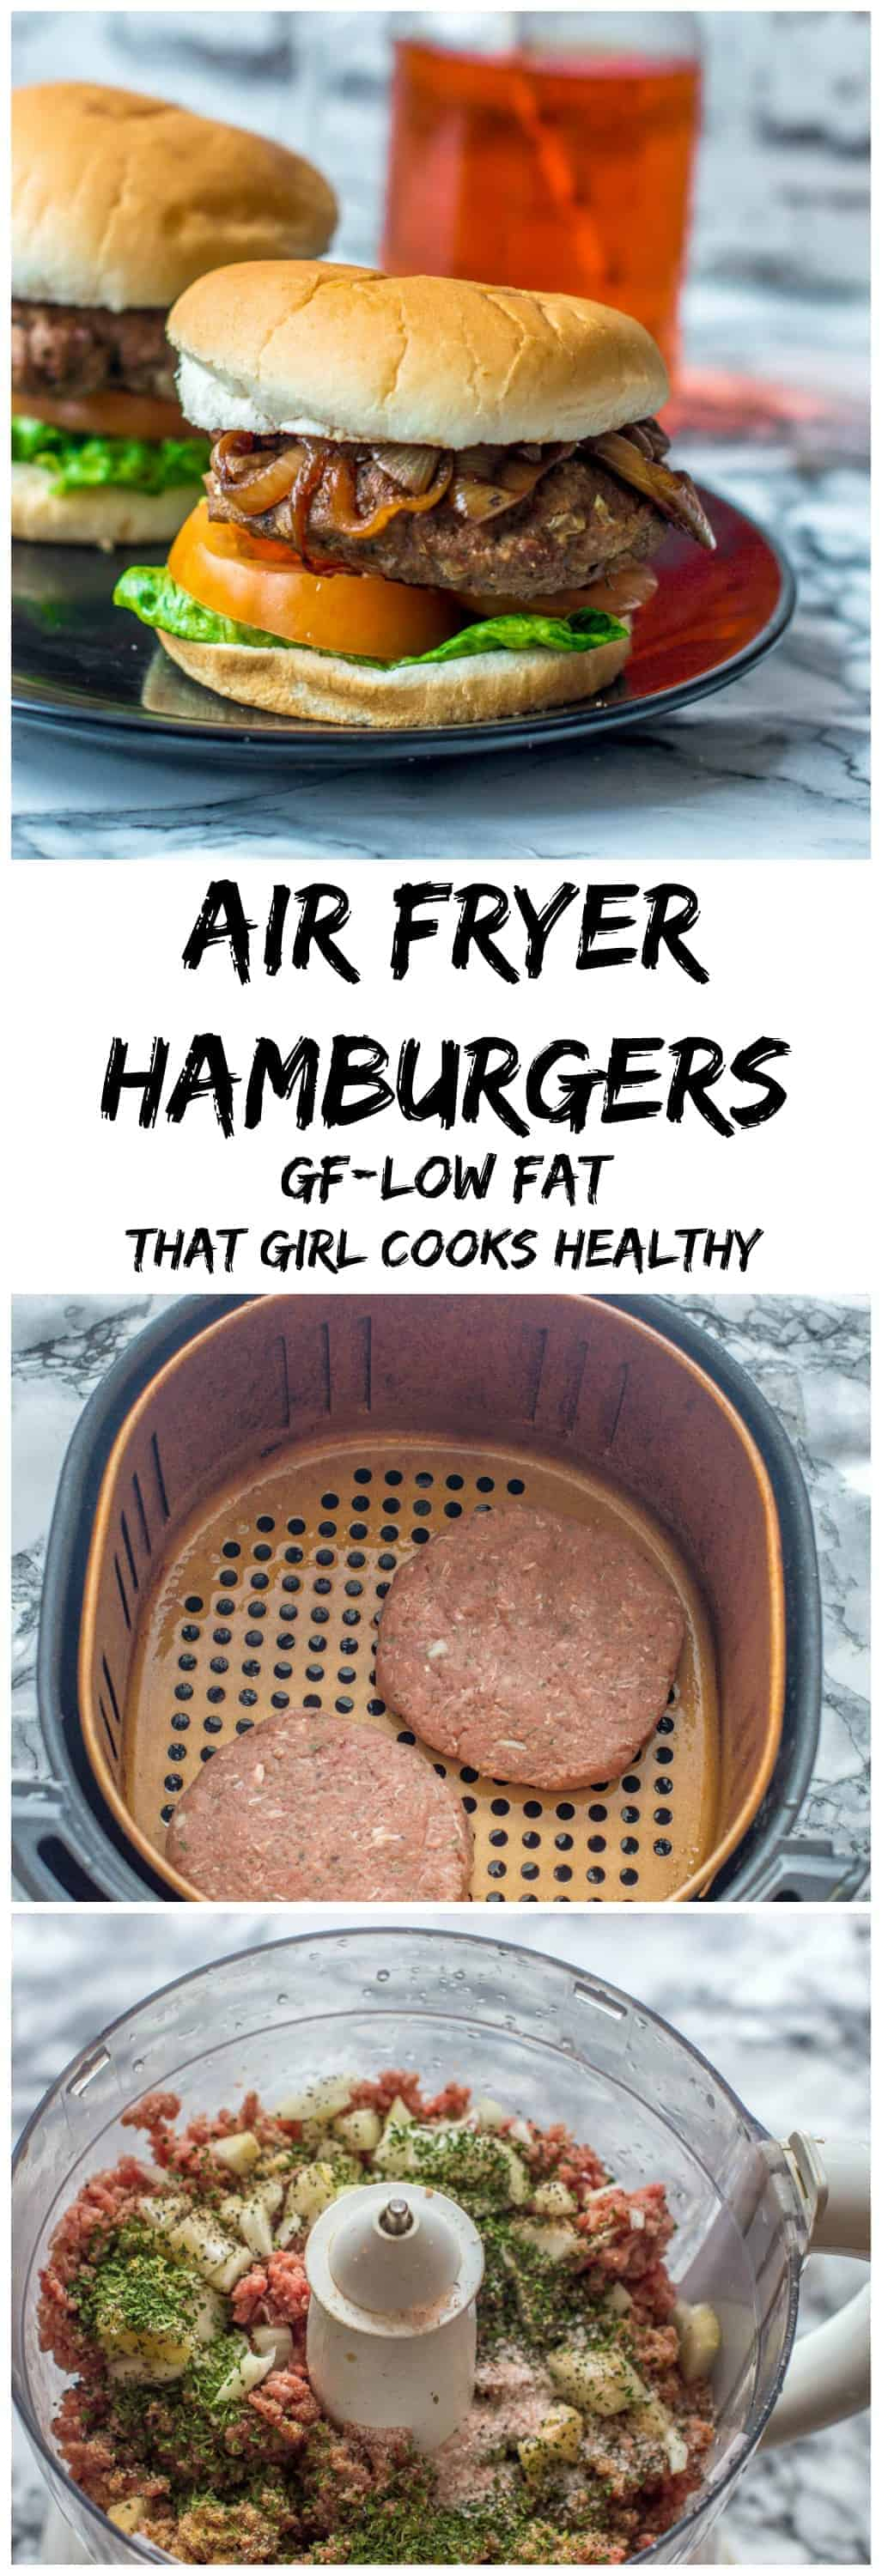 Tasty air fryer hamburgers made from scratch using lean beef - a great, low fat, child friendly appetiser.